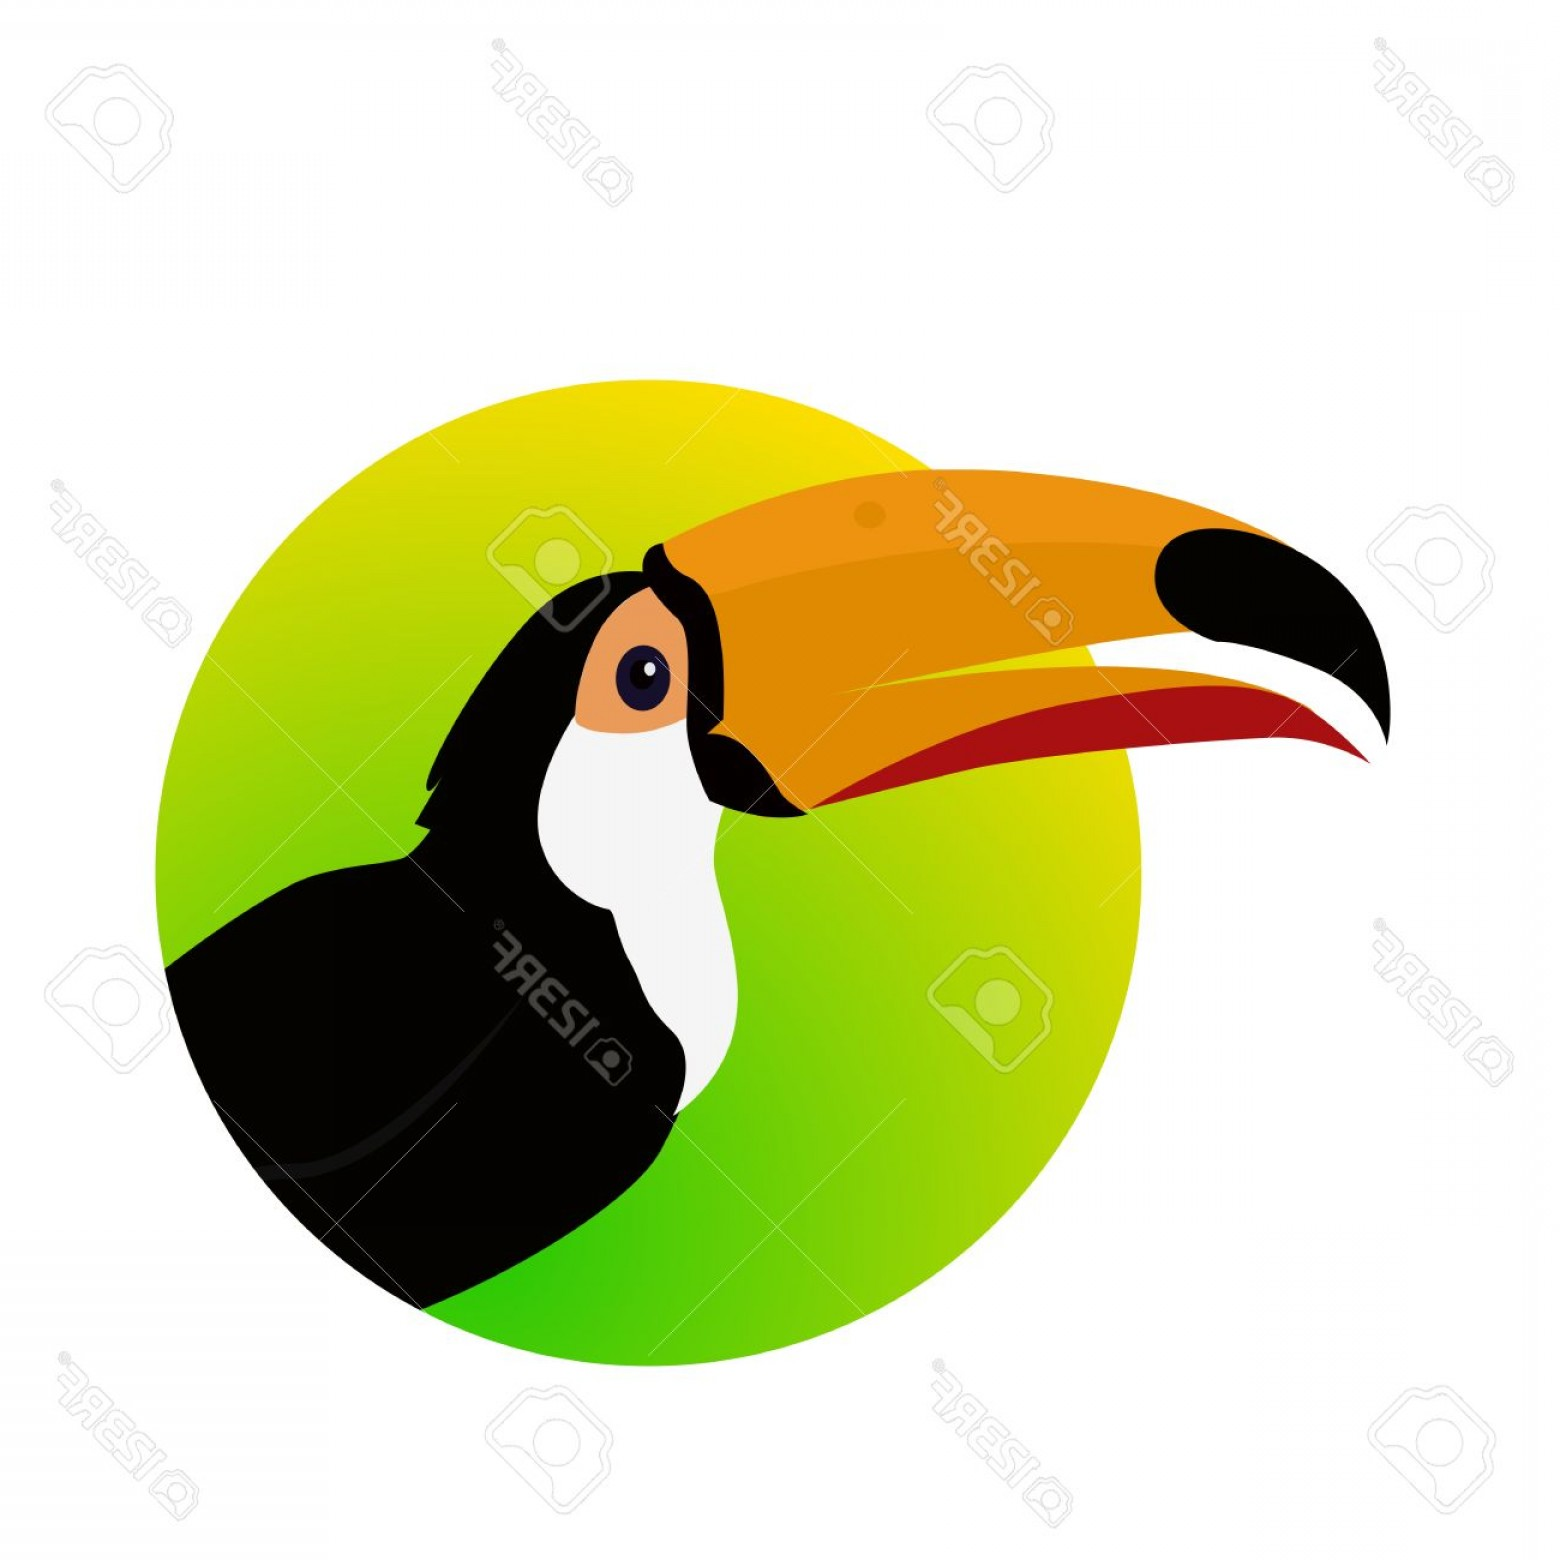 Toucan Vector: Photostock Vector Toucan Vector Animals Of Rainy Amazonian Forests In Flat Design Fauna Of South America Wild Life In